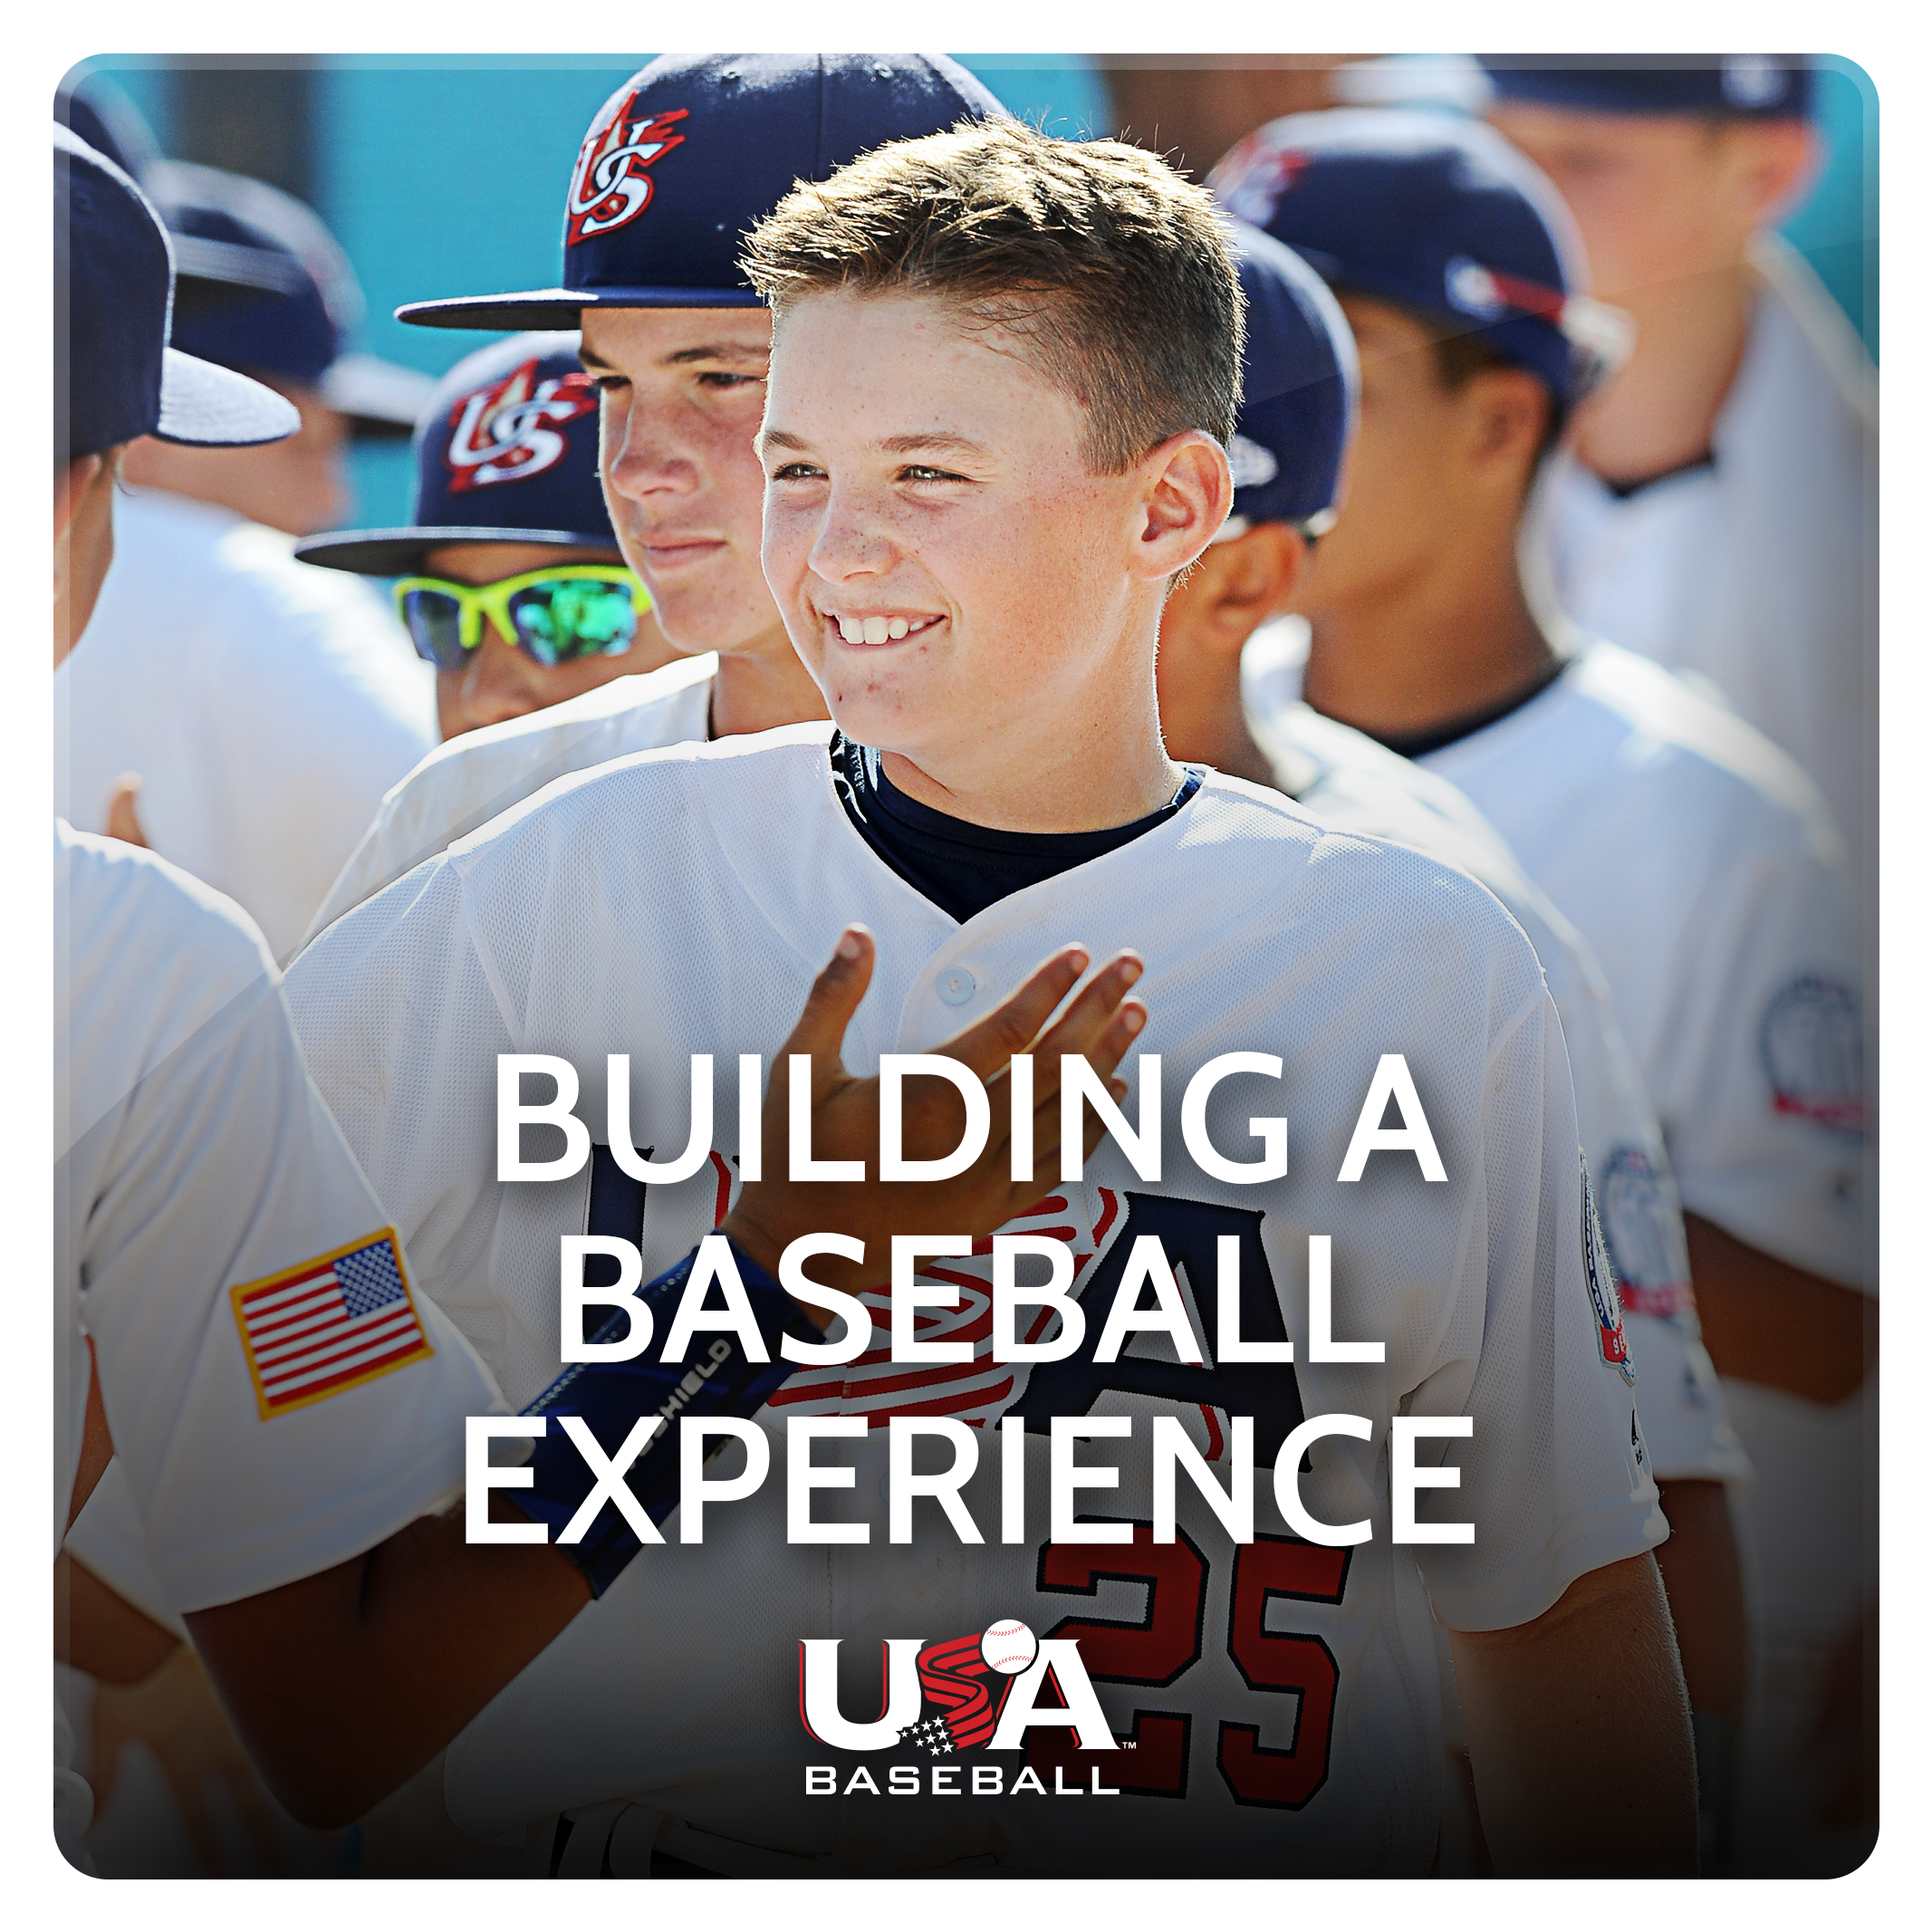 Building a Baseball Experience